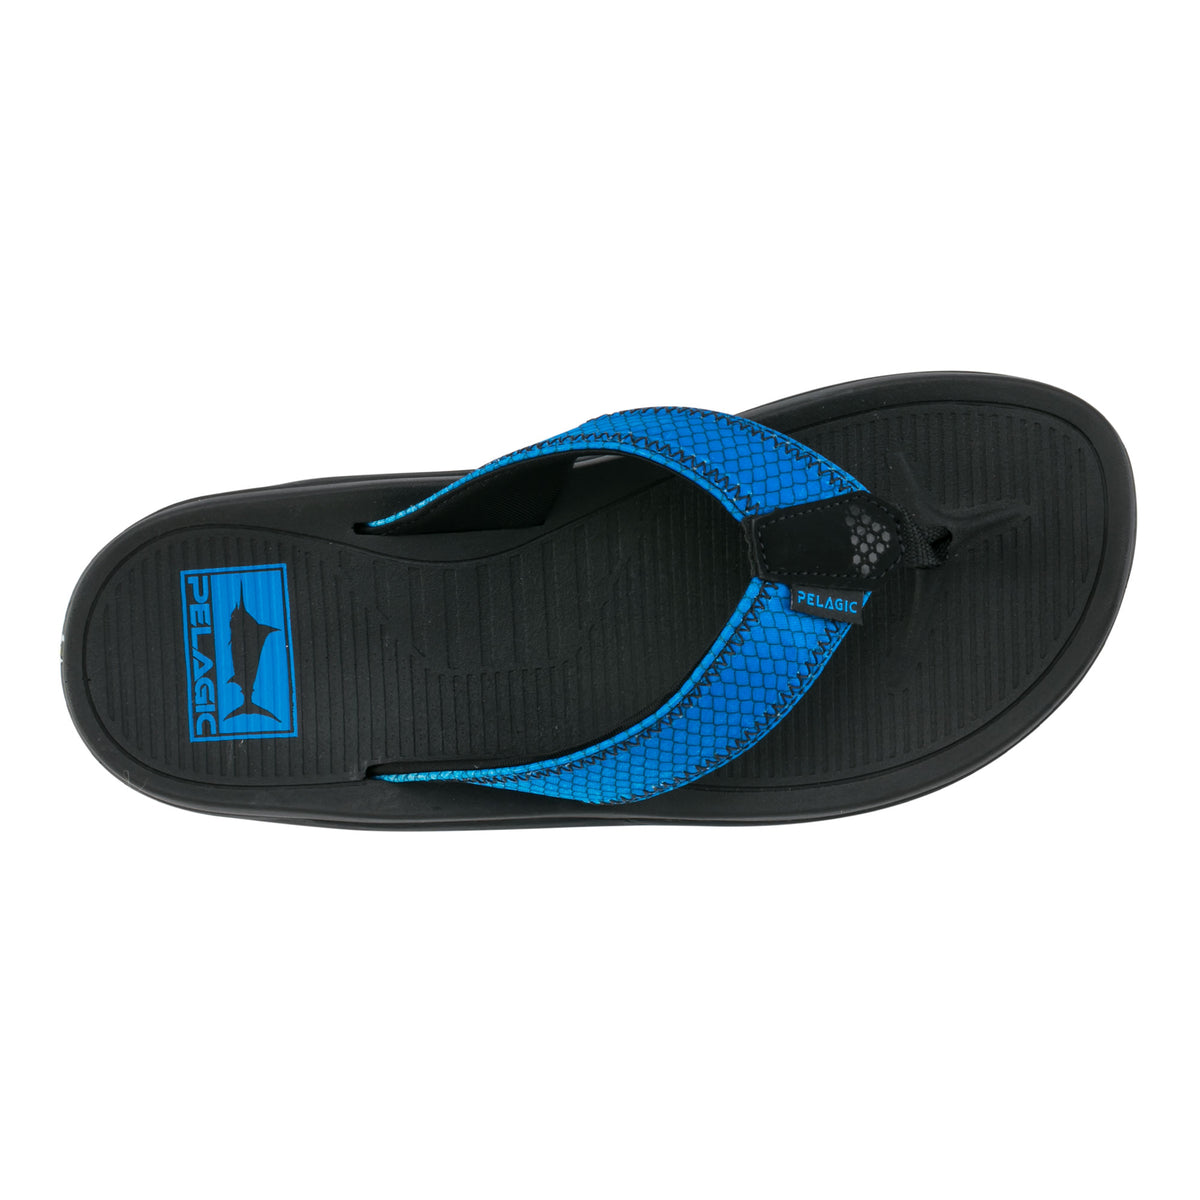 Offshore Fishing Sandals Big Image - 3